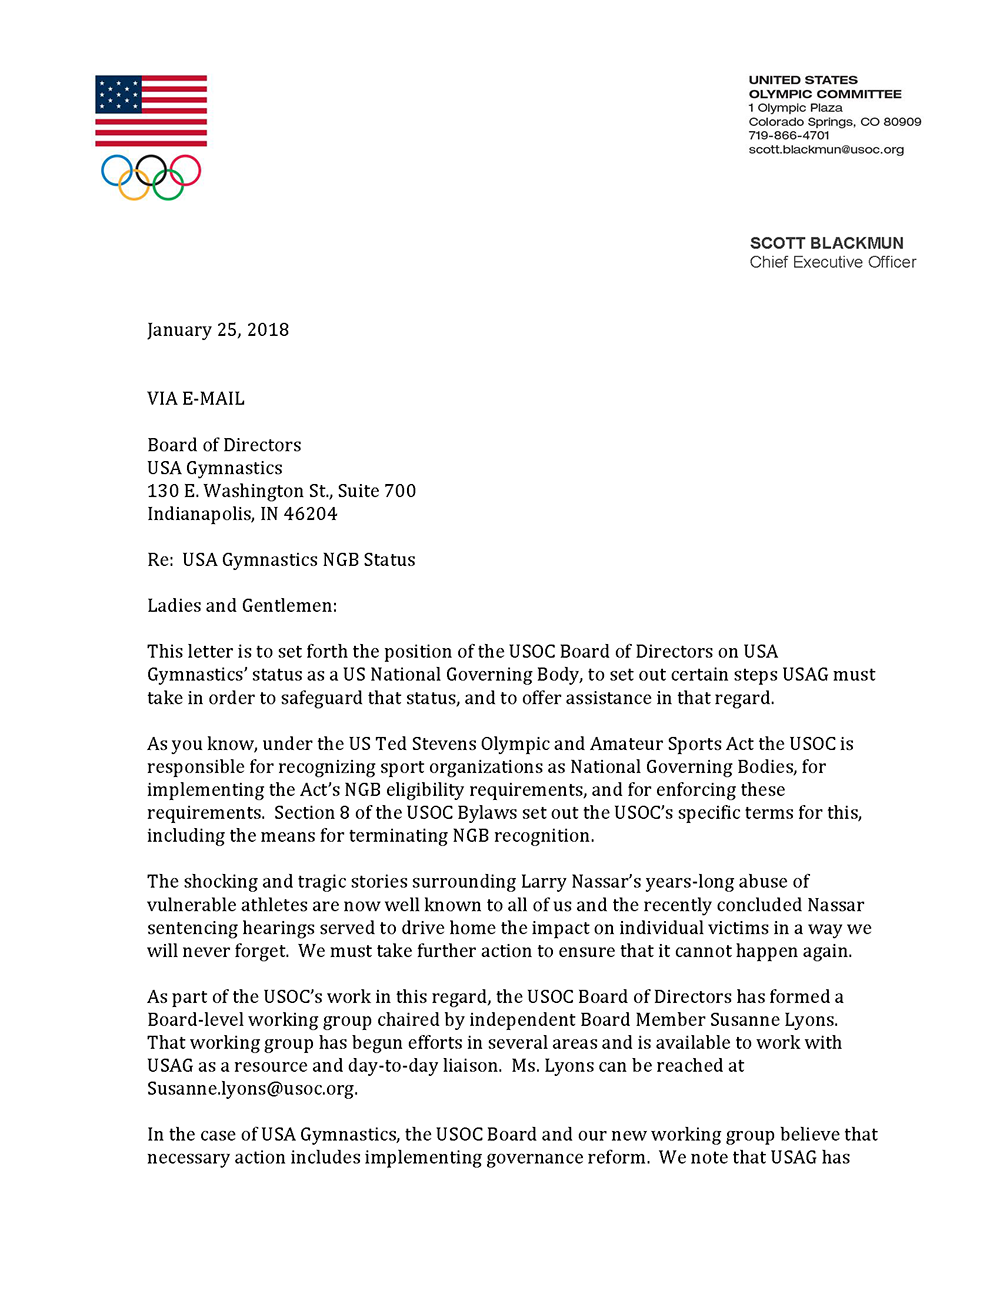 Ted stevens olympic amateur sports act